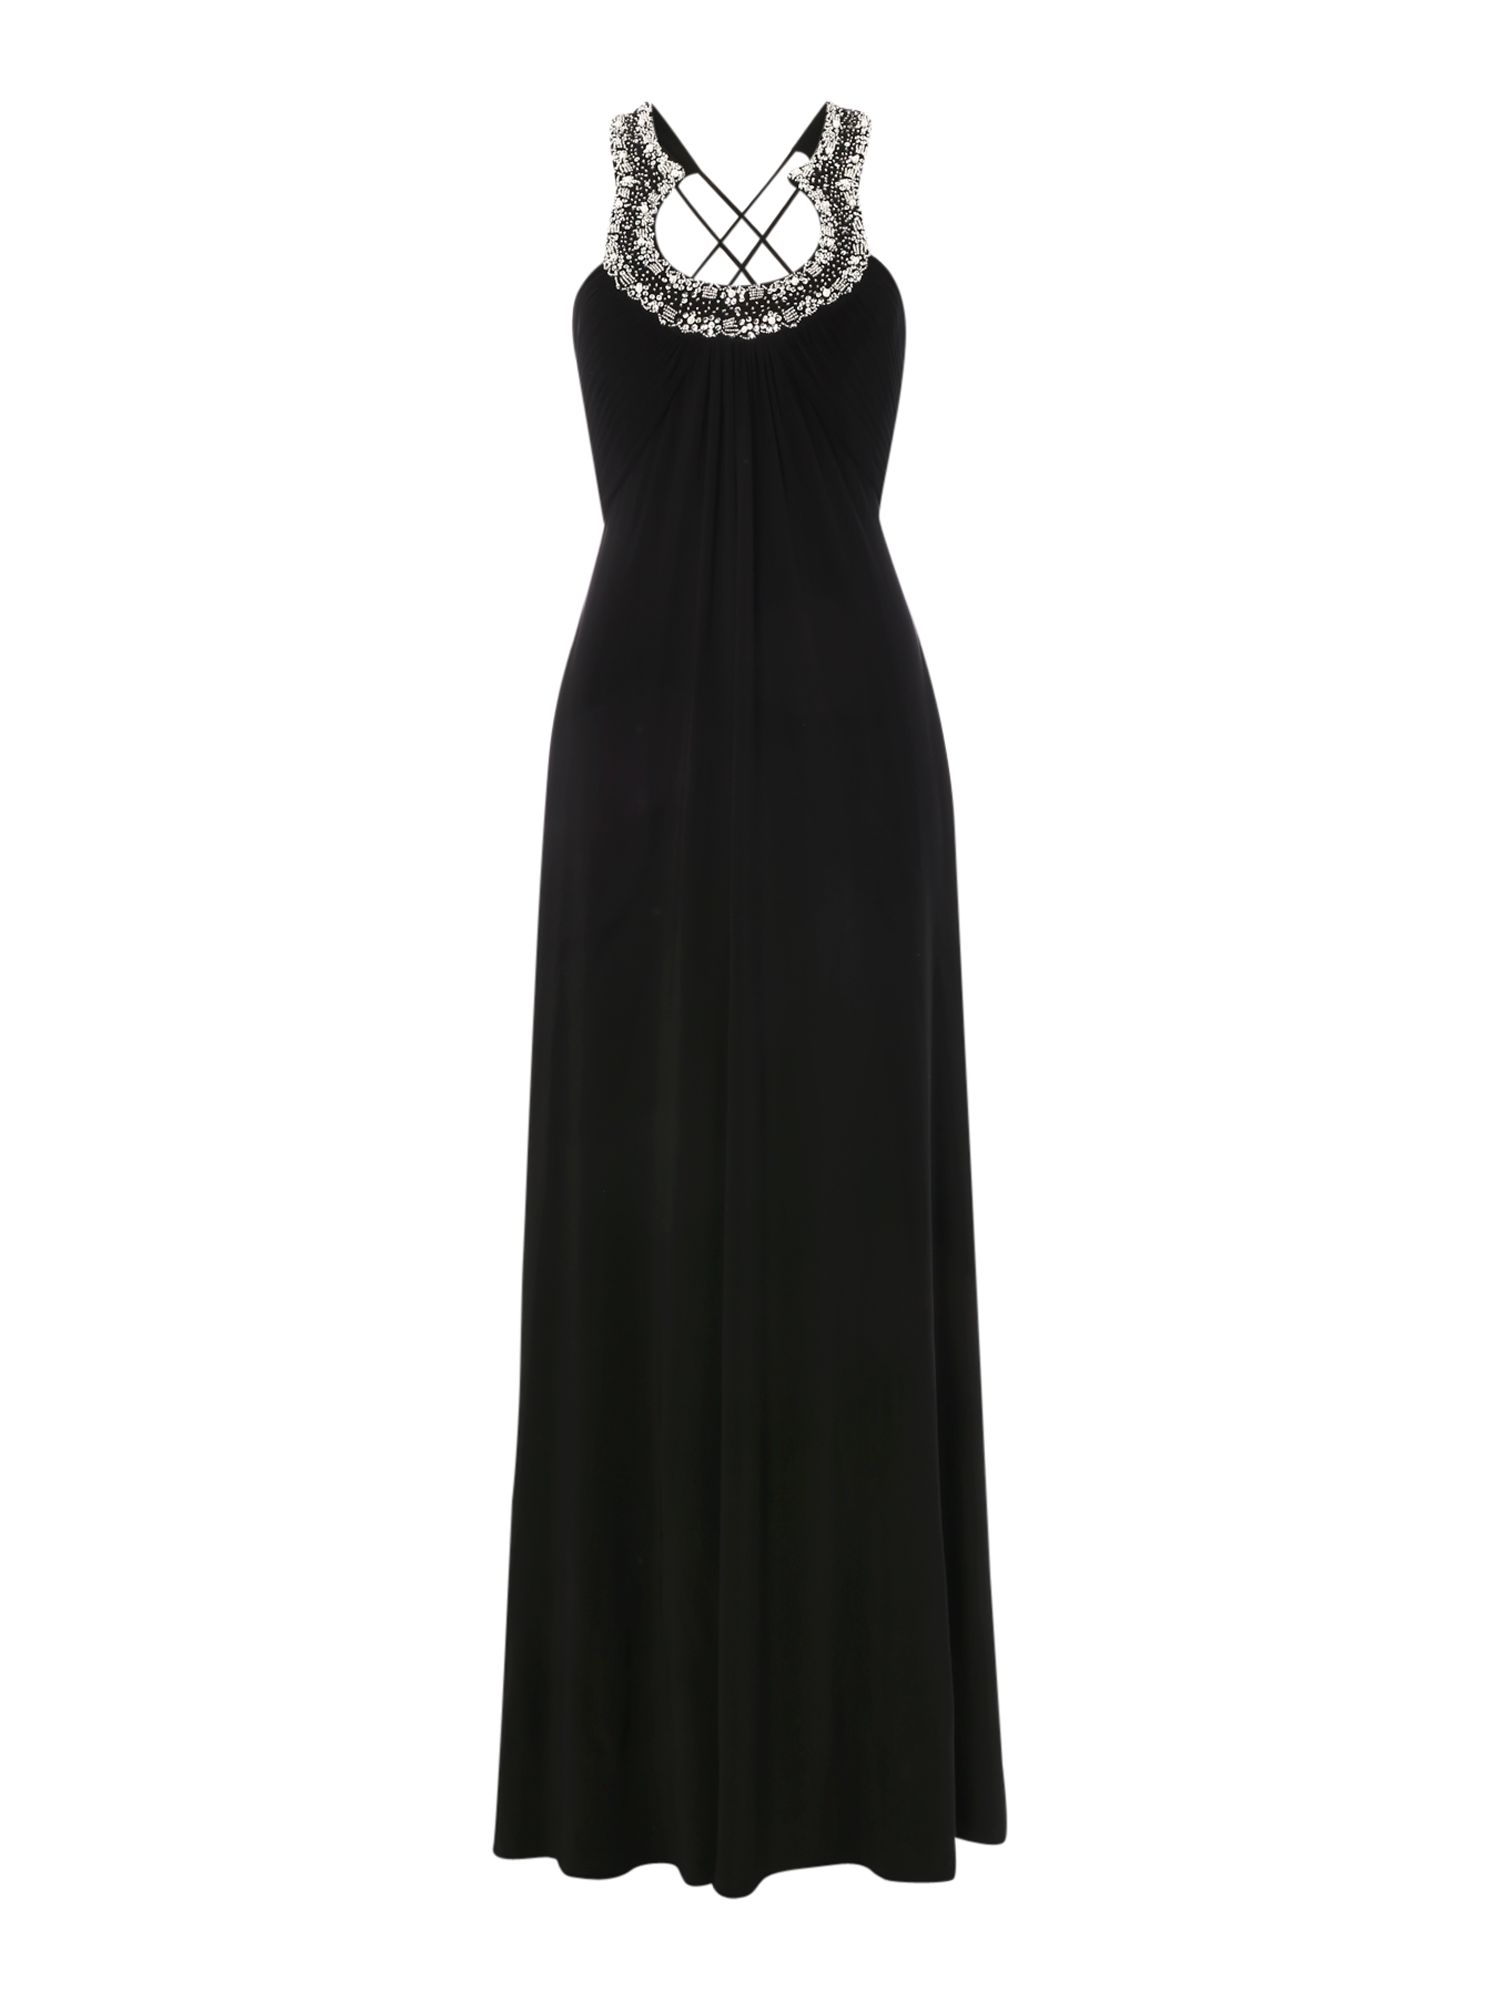 JS Collections Jersey gown with horseshoe neckline, Black